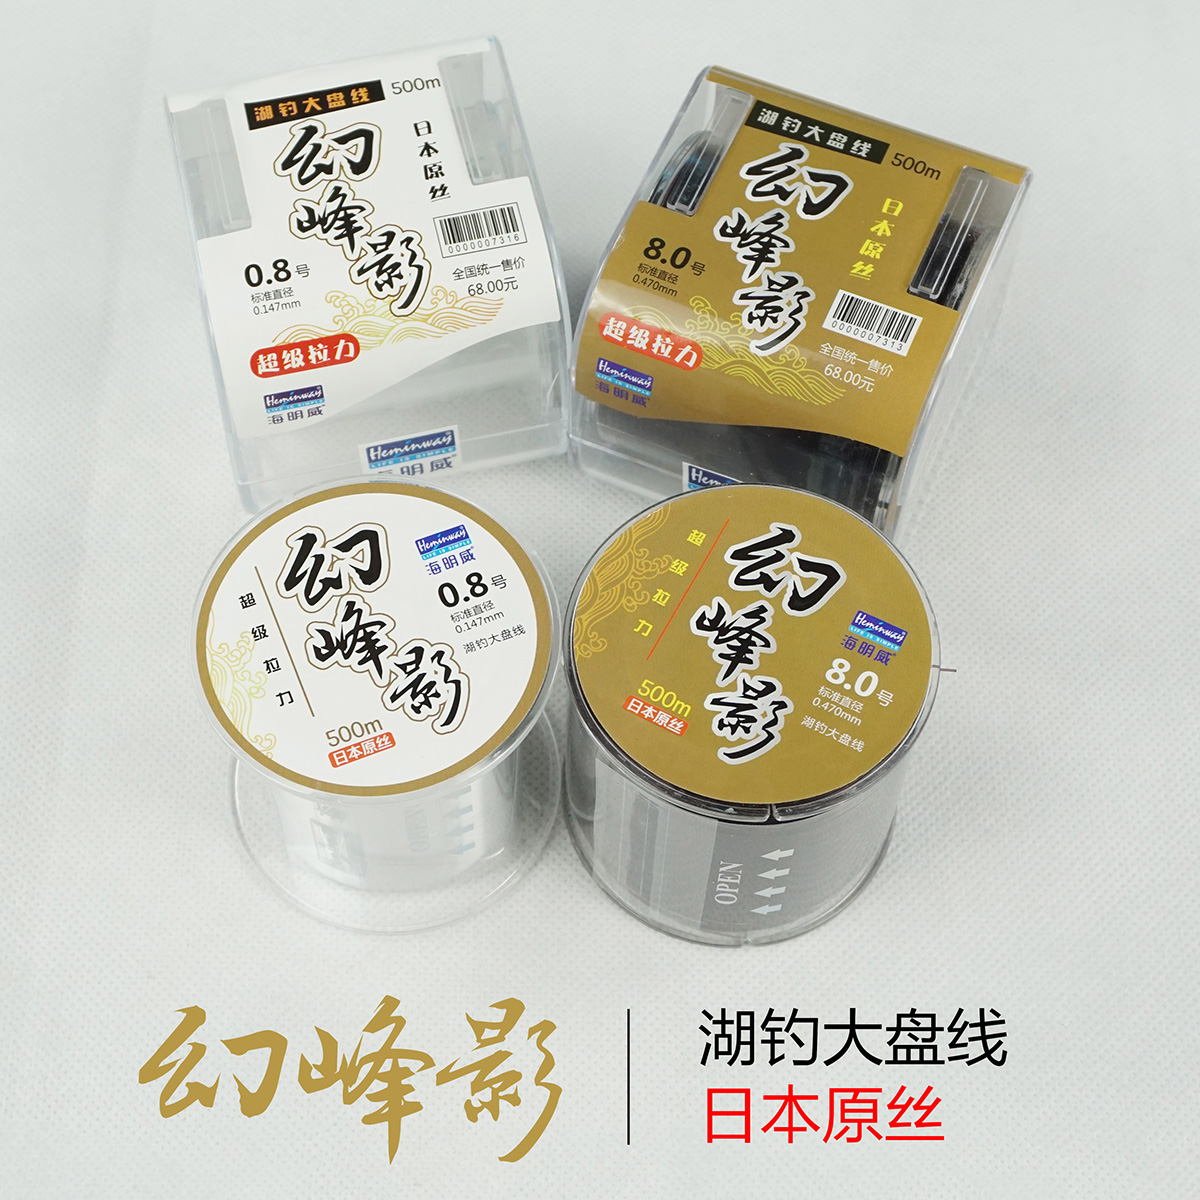 Hemingway fishing lake fishing line tape line dark coffee color wear resistant 500 m japanese raw silk fishing line fishing supplies